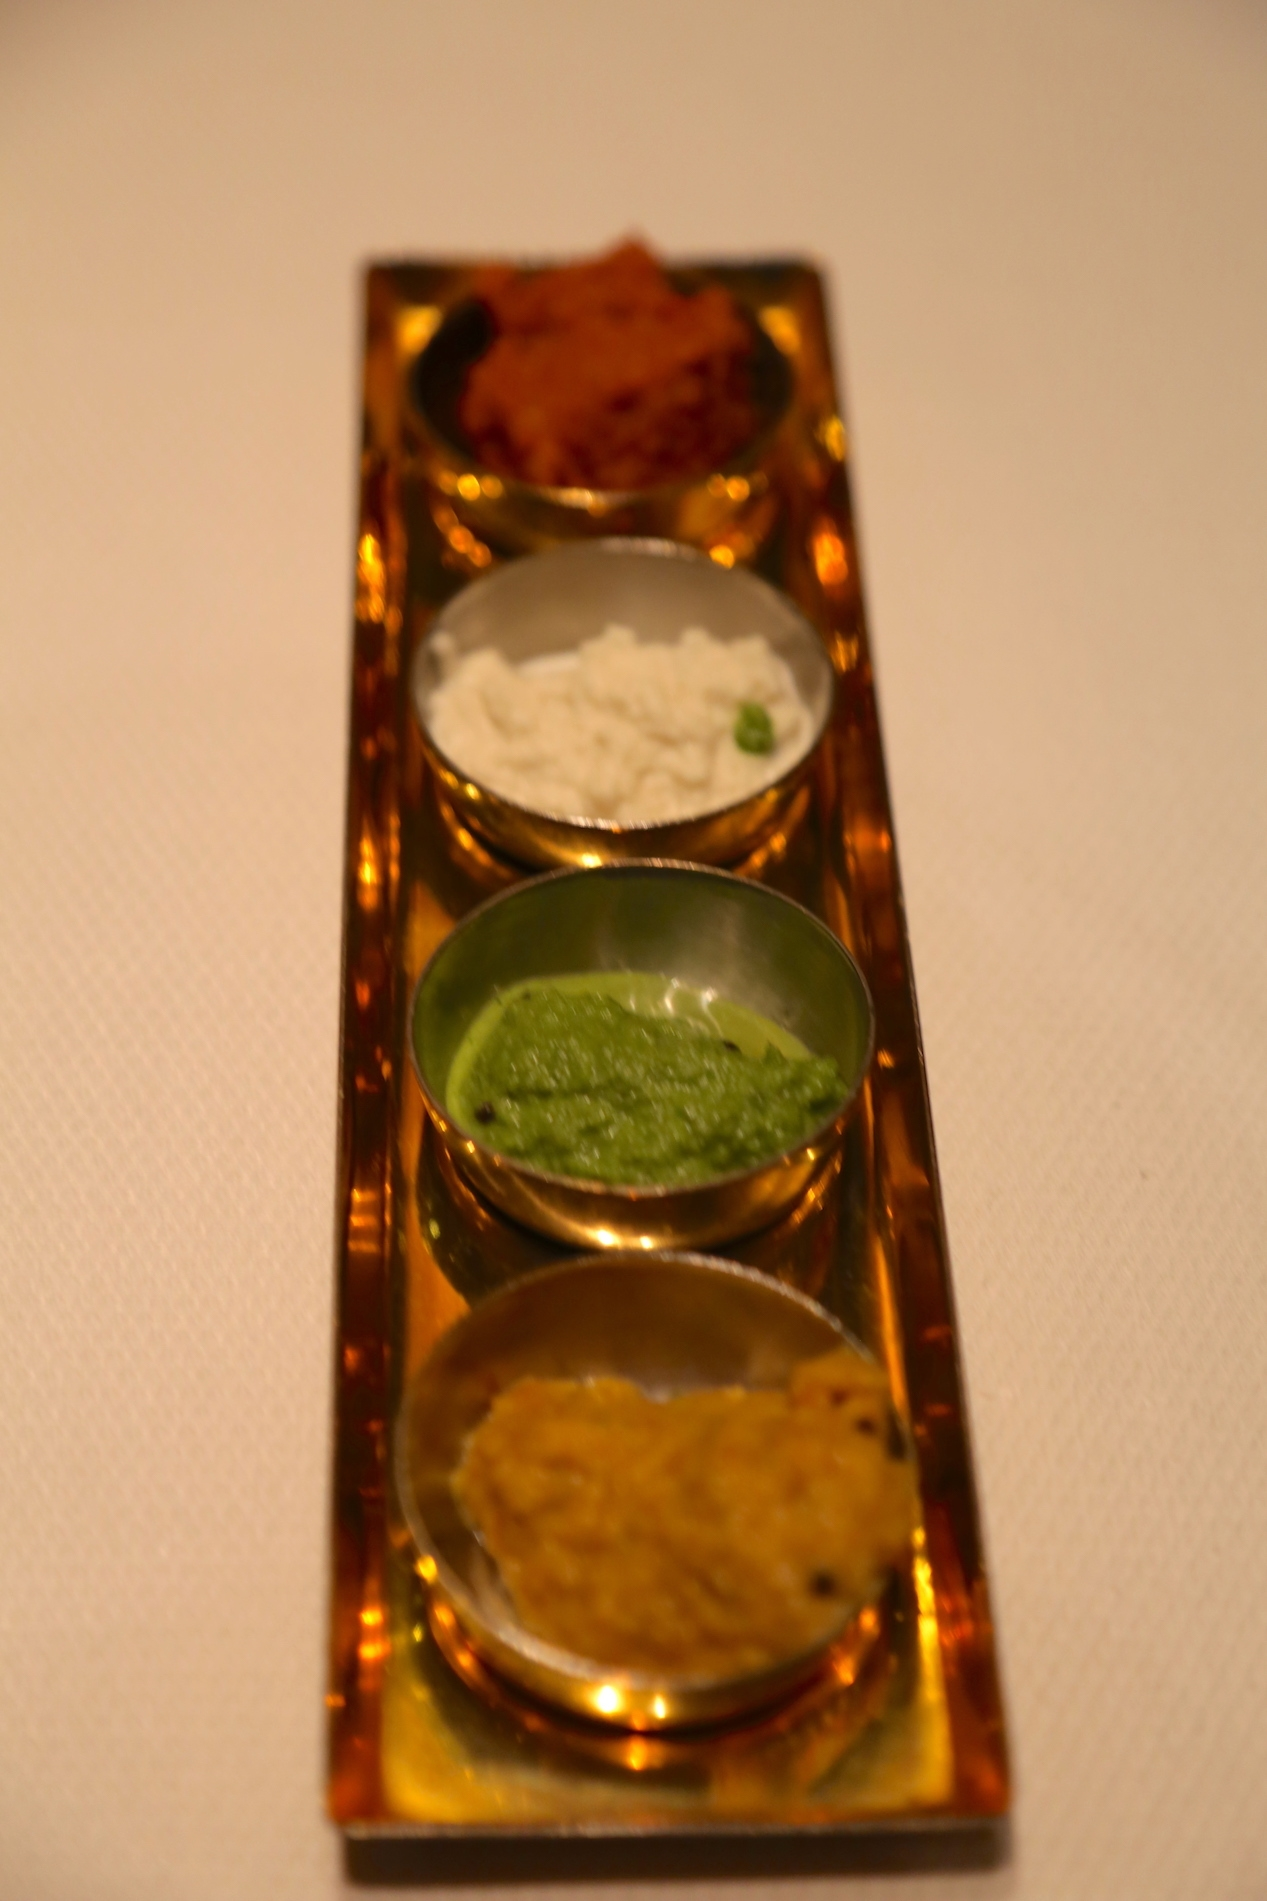 CURRY LEAF CHUTNEY OR KARUVEPILLAI CHUTNEY